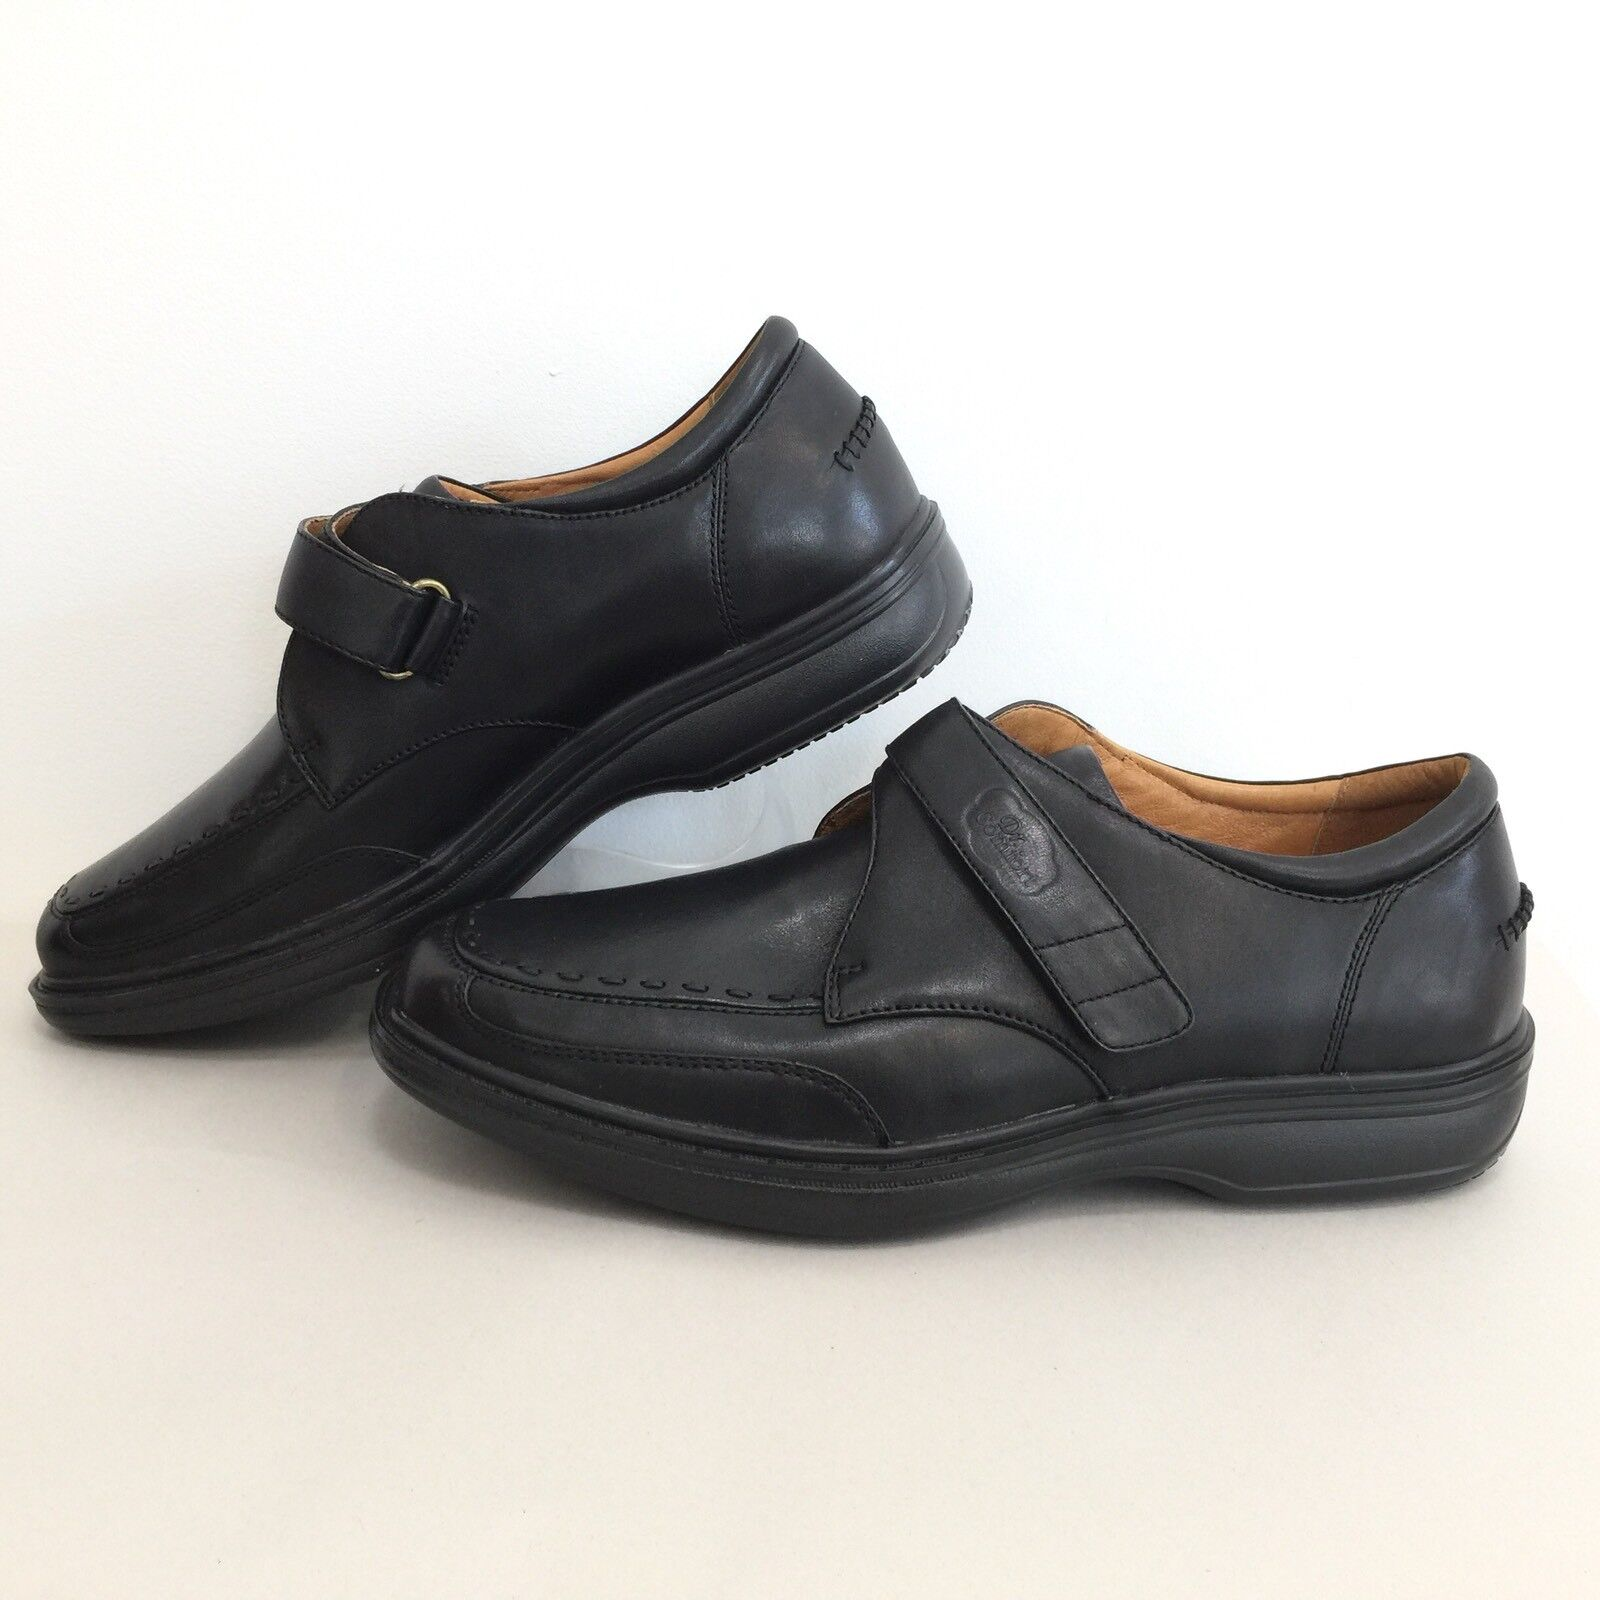 Dr Comfort Mens Sz 10.5 W Black Leather Frank Comfort shoes Leather Lined EUR 44W